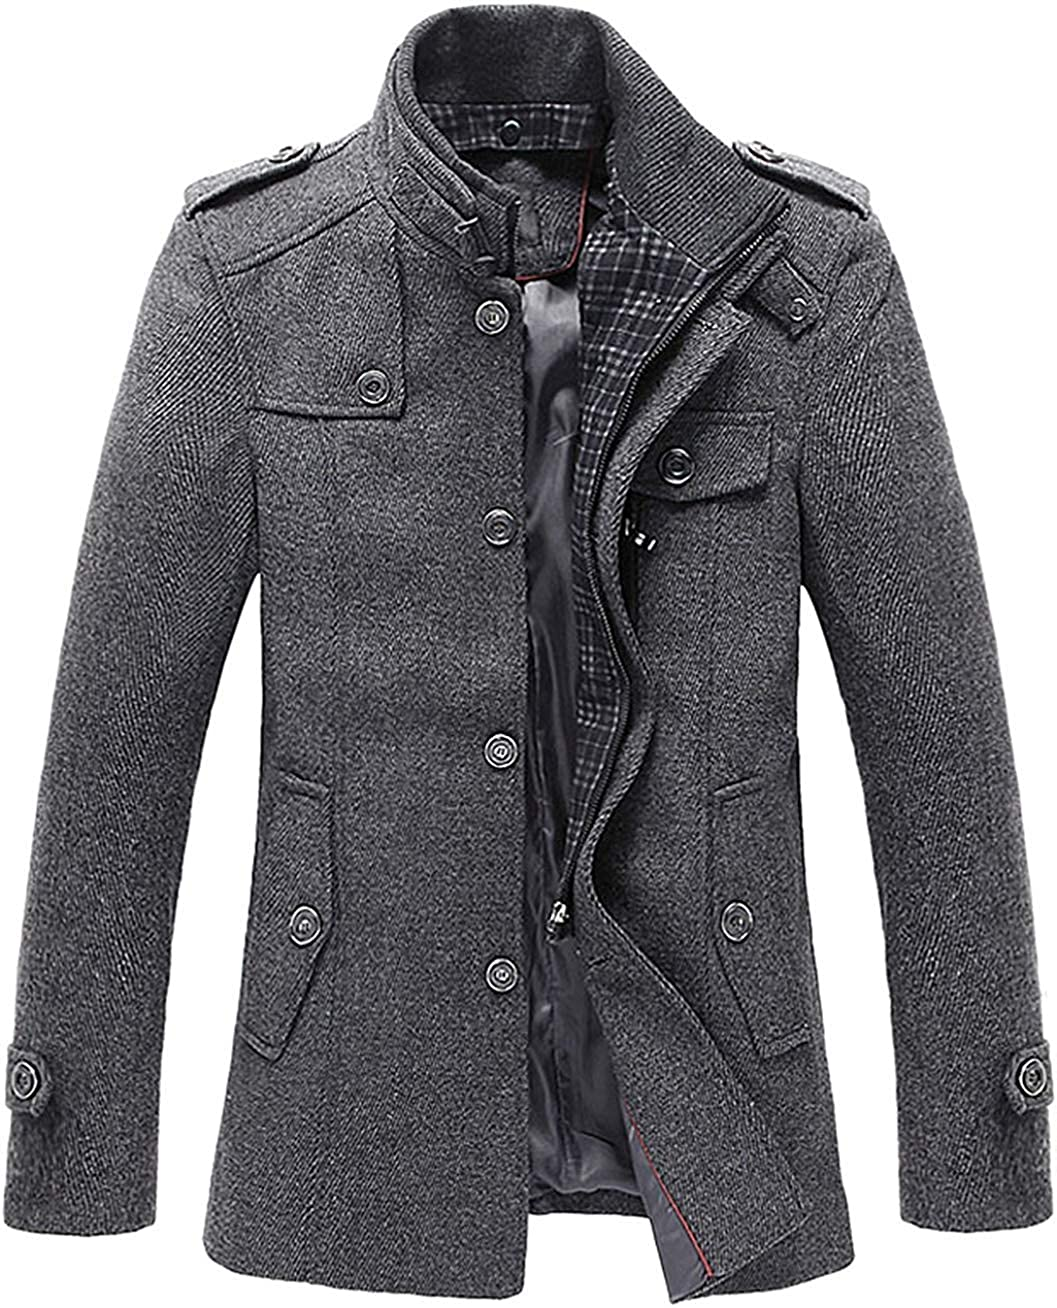 Mens Winter Stylish Wool Blend Single Breasted Military Peacoat